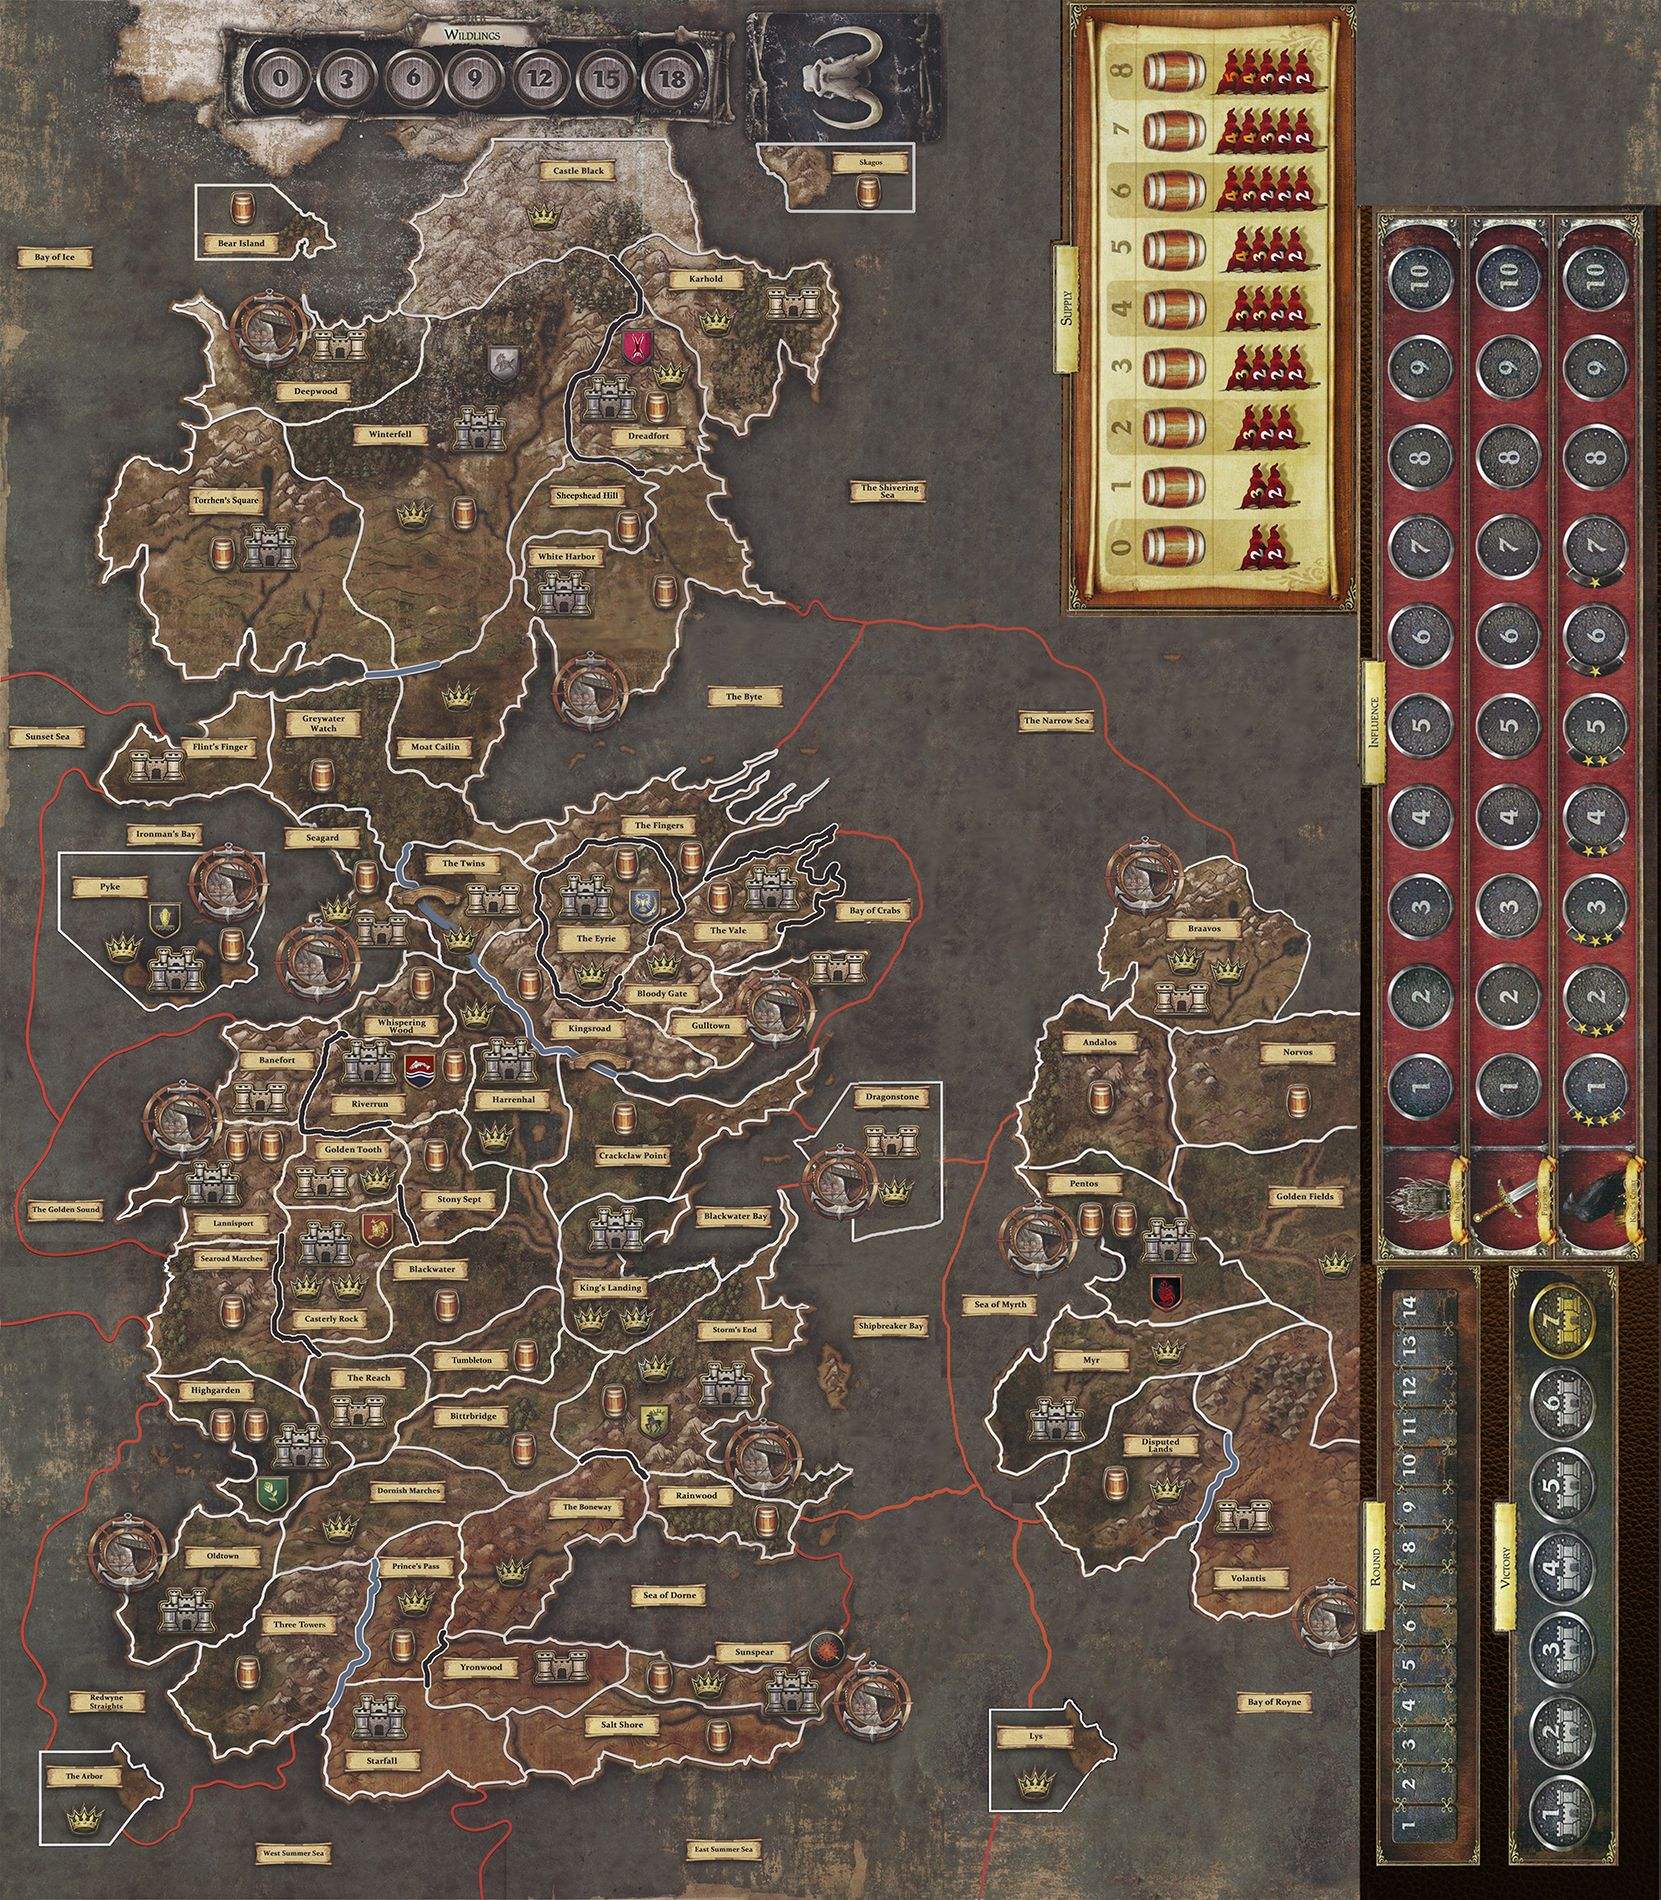 10 Player map with Bolton | A Game of Thrones: The Board ... on downton abbey map, star trek map, justified map, world map, spooksville map, walking dead map, jersey shore map, narnia map, bloodline map, a storm of swords map, dallas map, clash of kings map, gendry map, jericho map, camelot map, winterfell map, got map, valyria map, qarth map, guild wars 2 map,